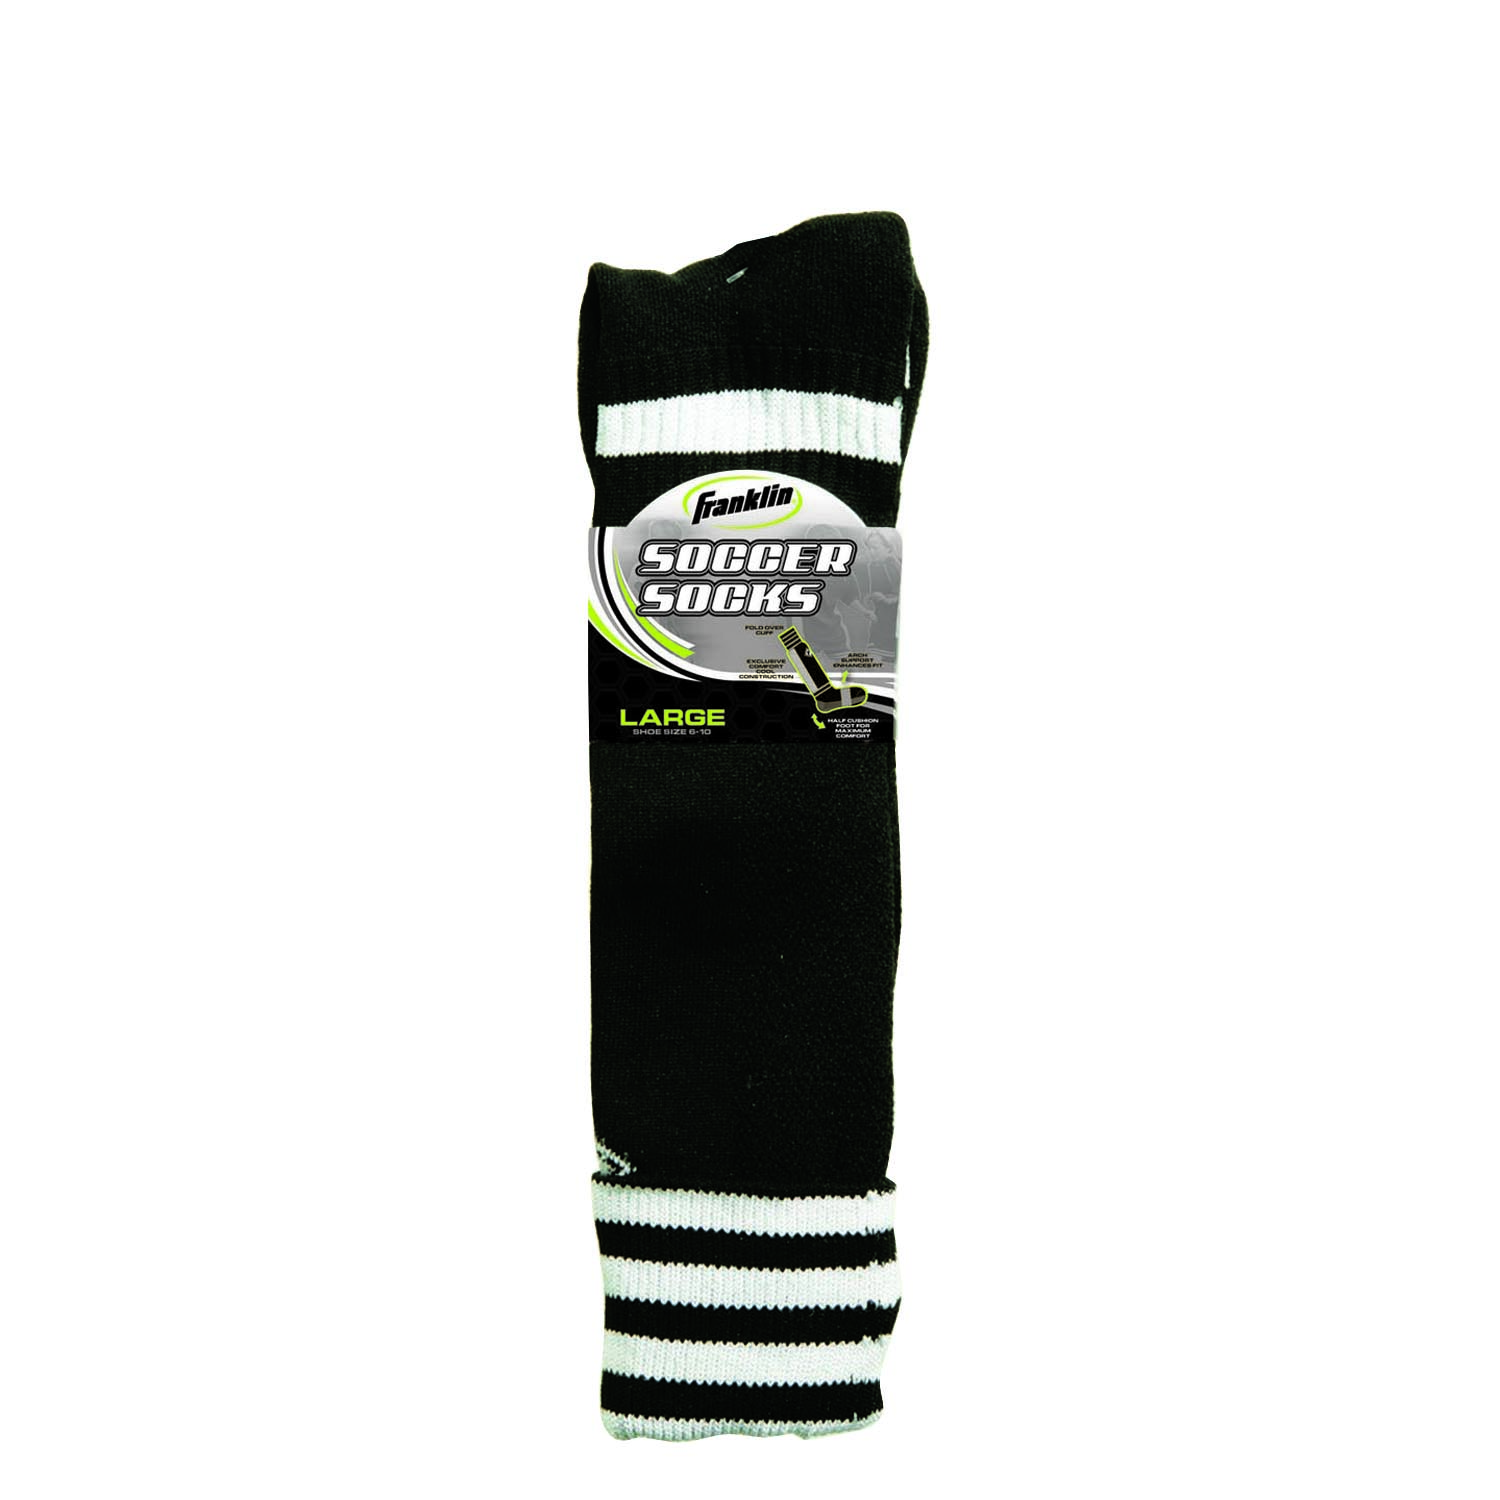 ACD Soccer Socks White Large Adult 6 Pack